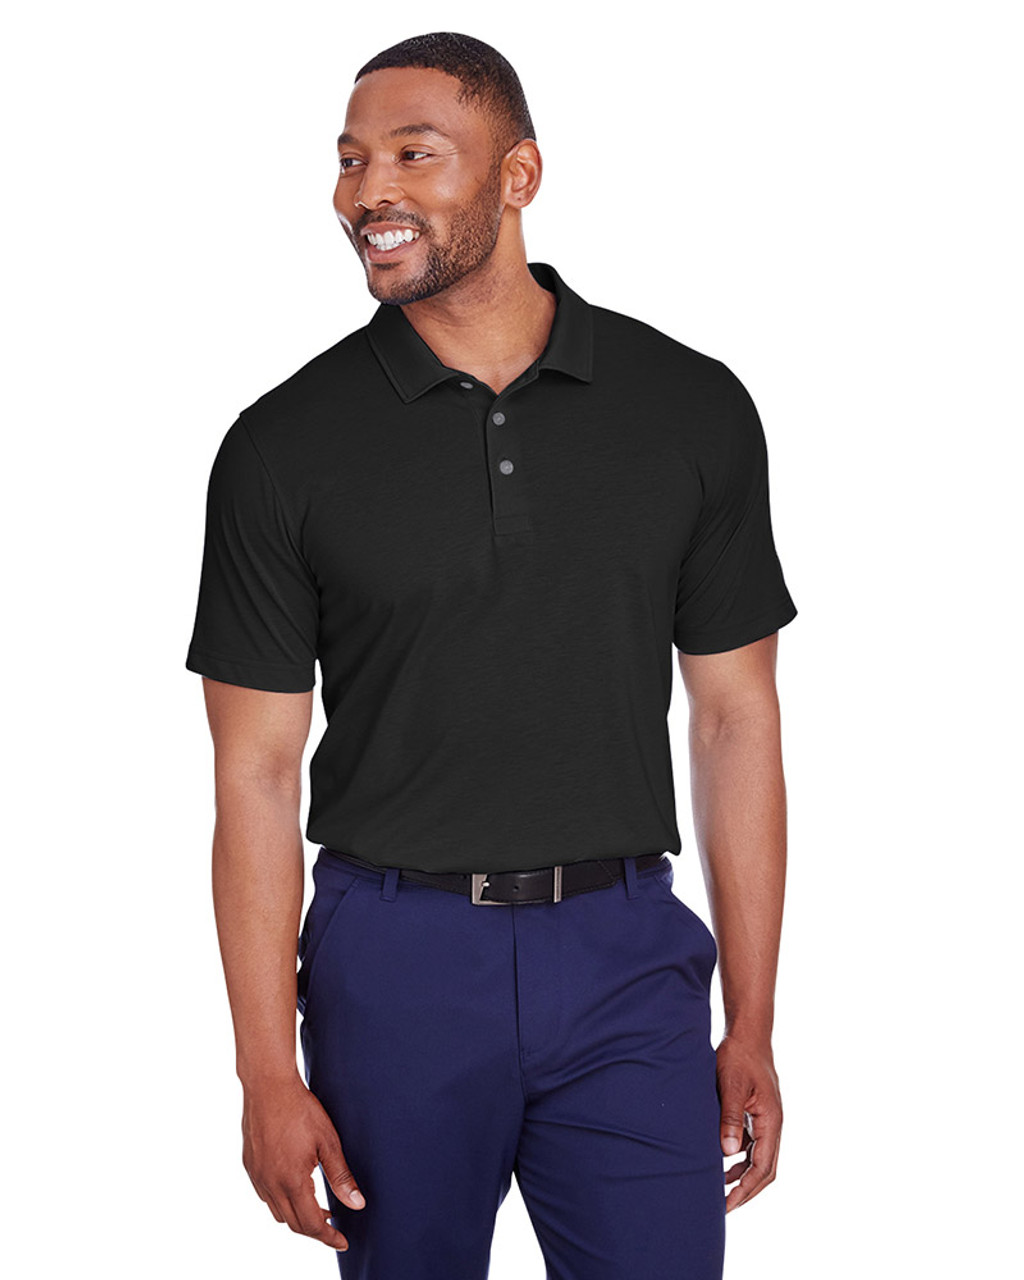 Puma Black - 596920 Puma Golf Men's Fusion Polo | Blankclothing.ca